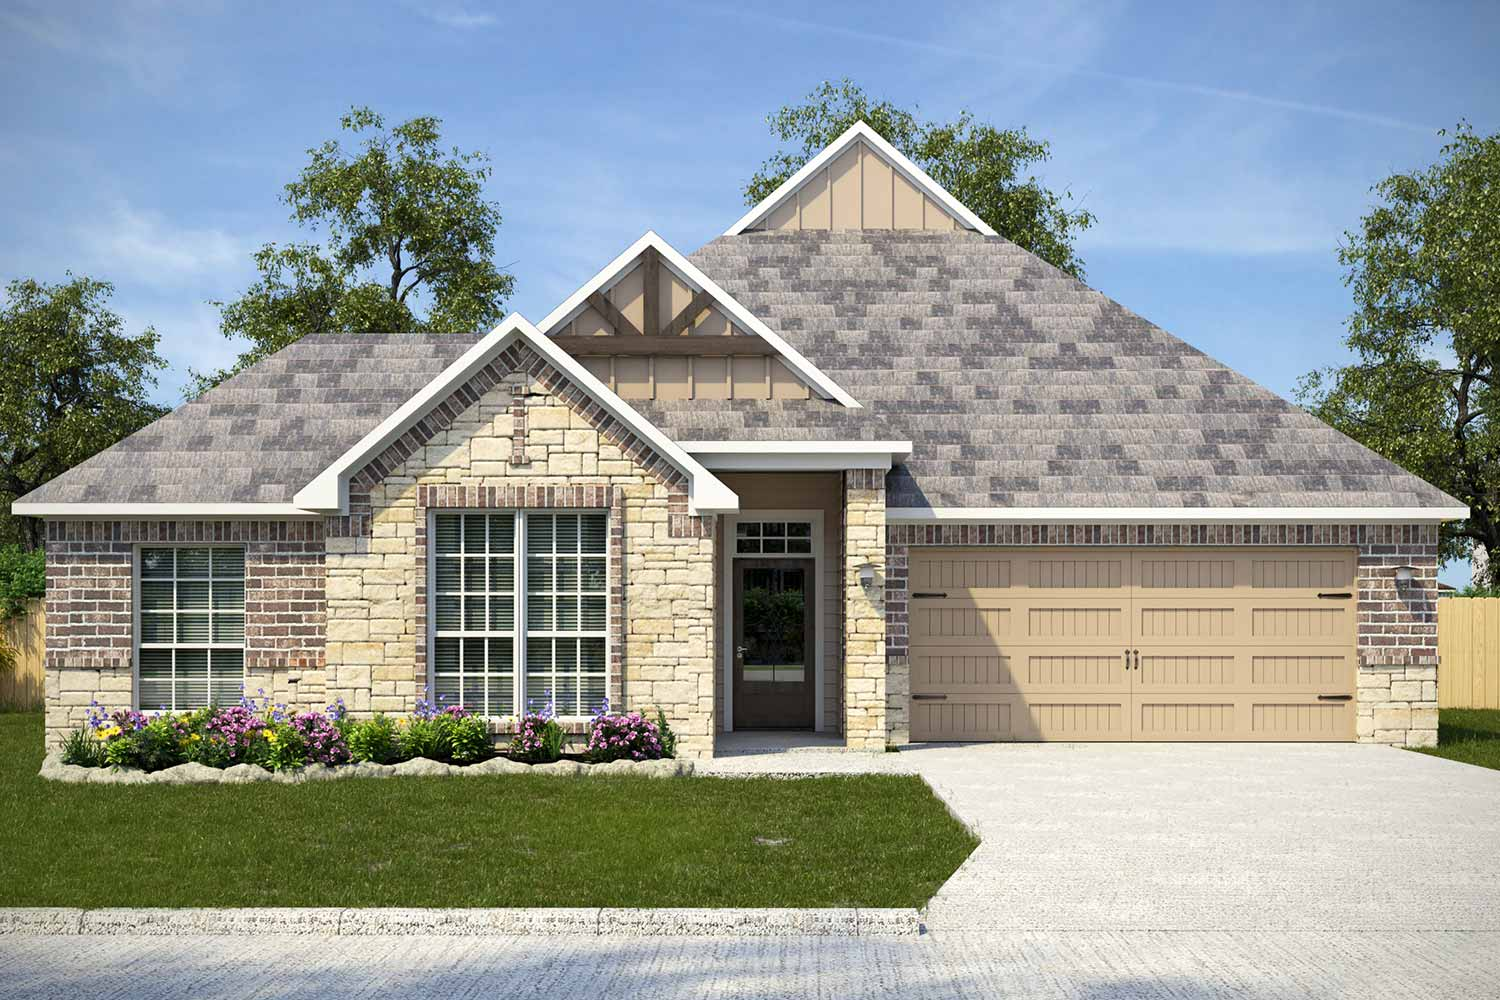 New Homes for Sale in Belton, TX | 3212 Belmont Dr